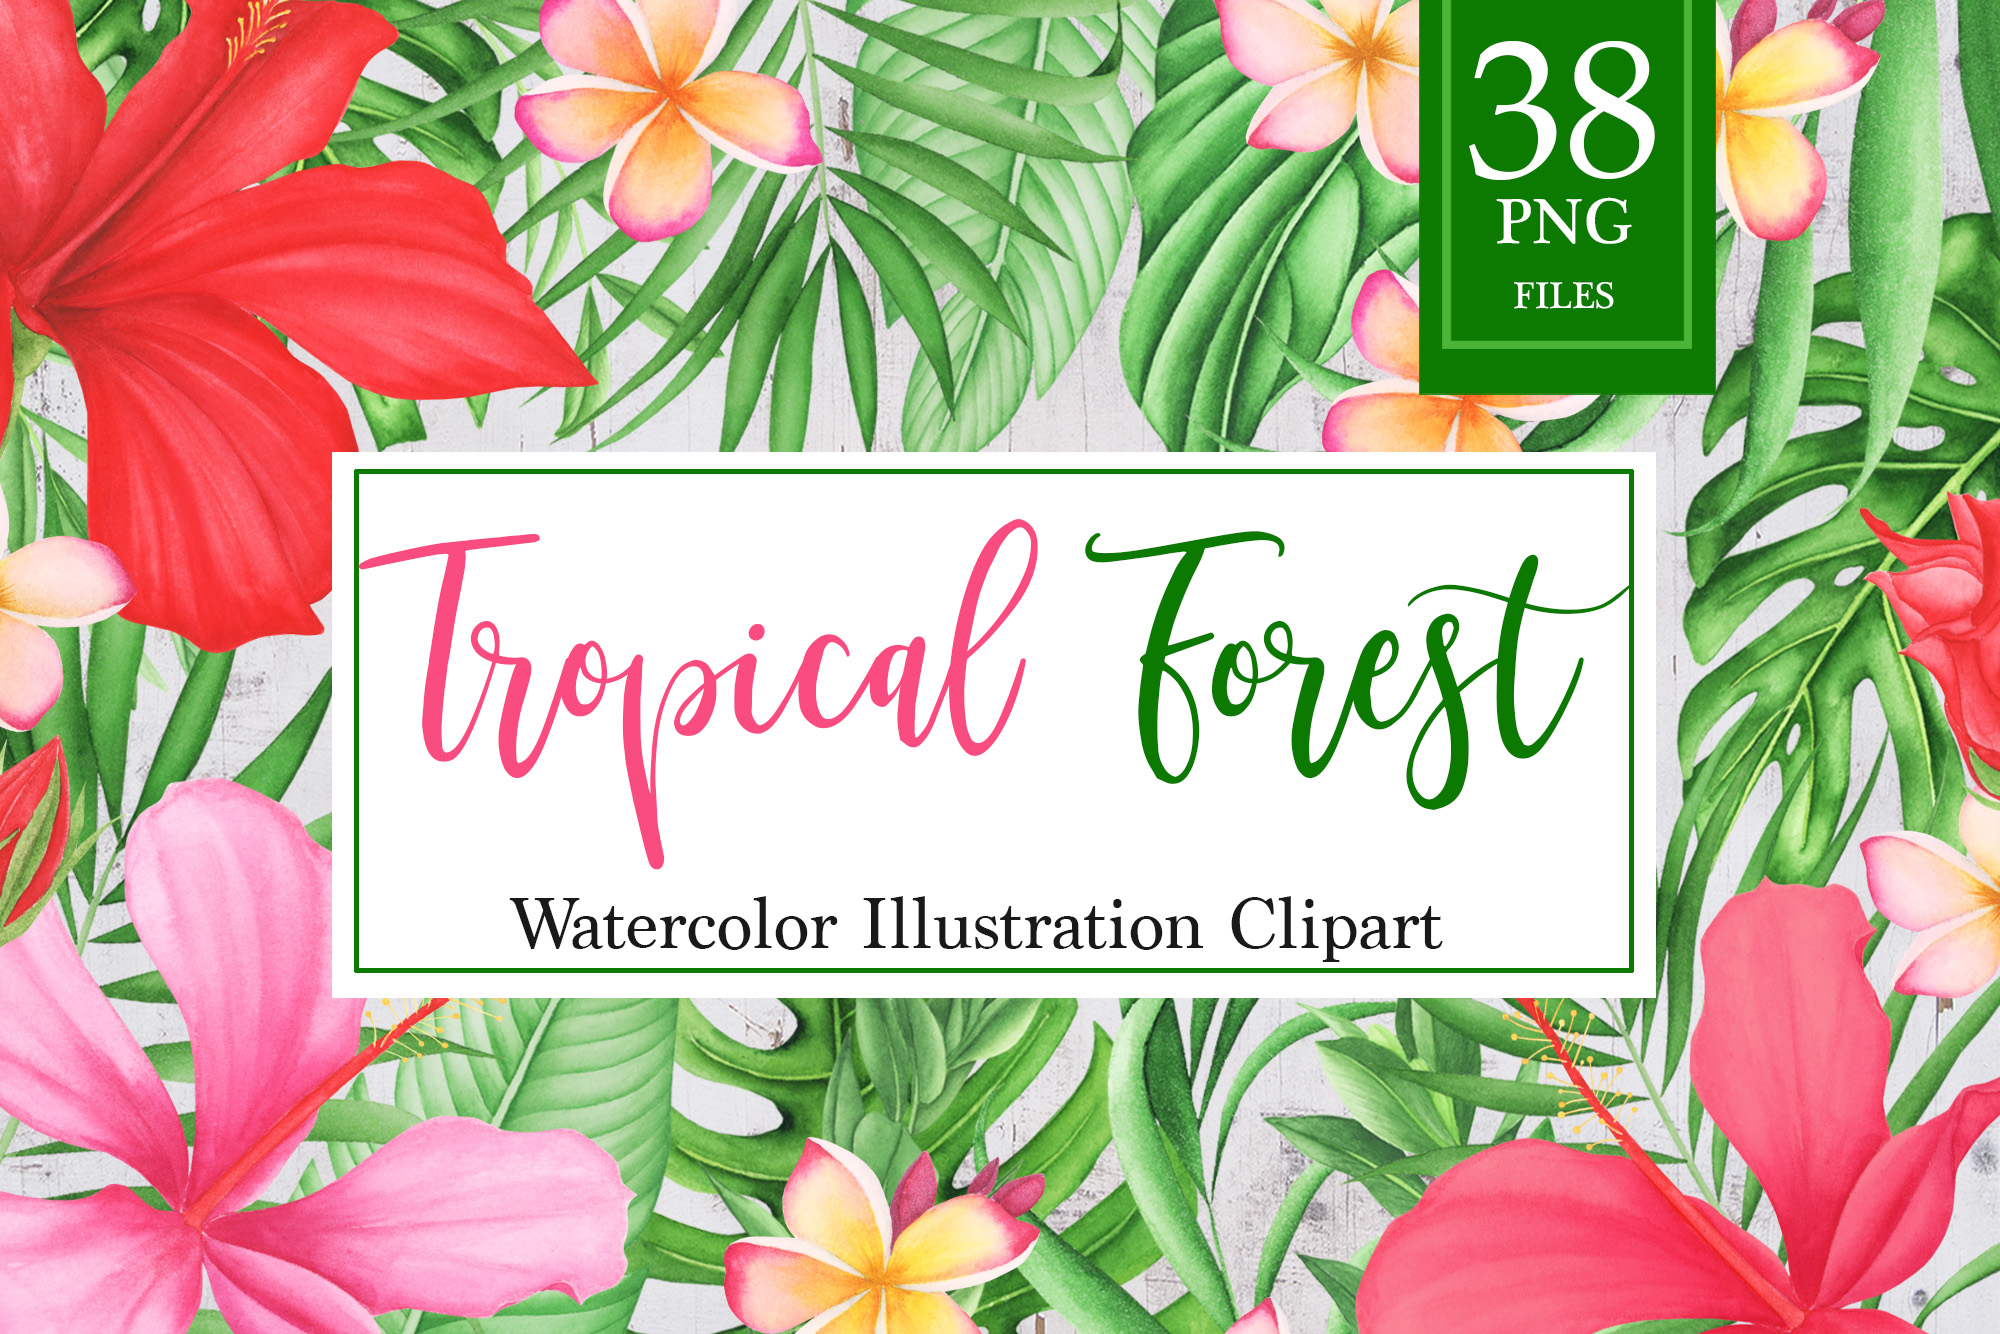 Tropical leaves and flowers clipart example image 1